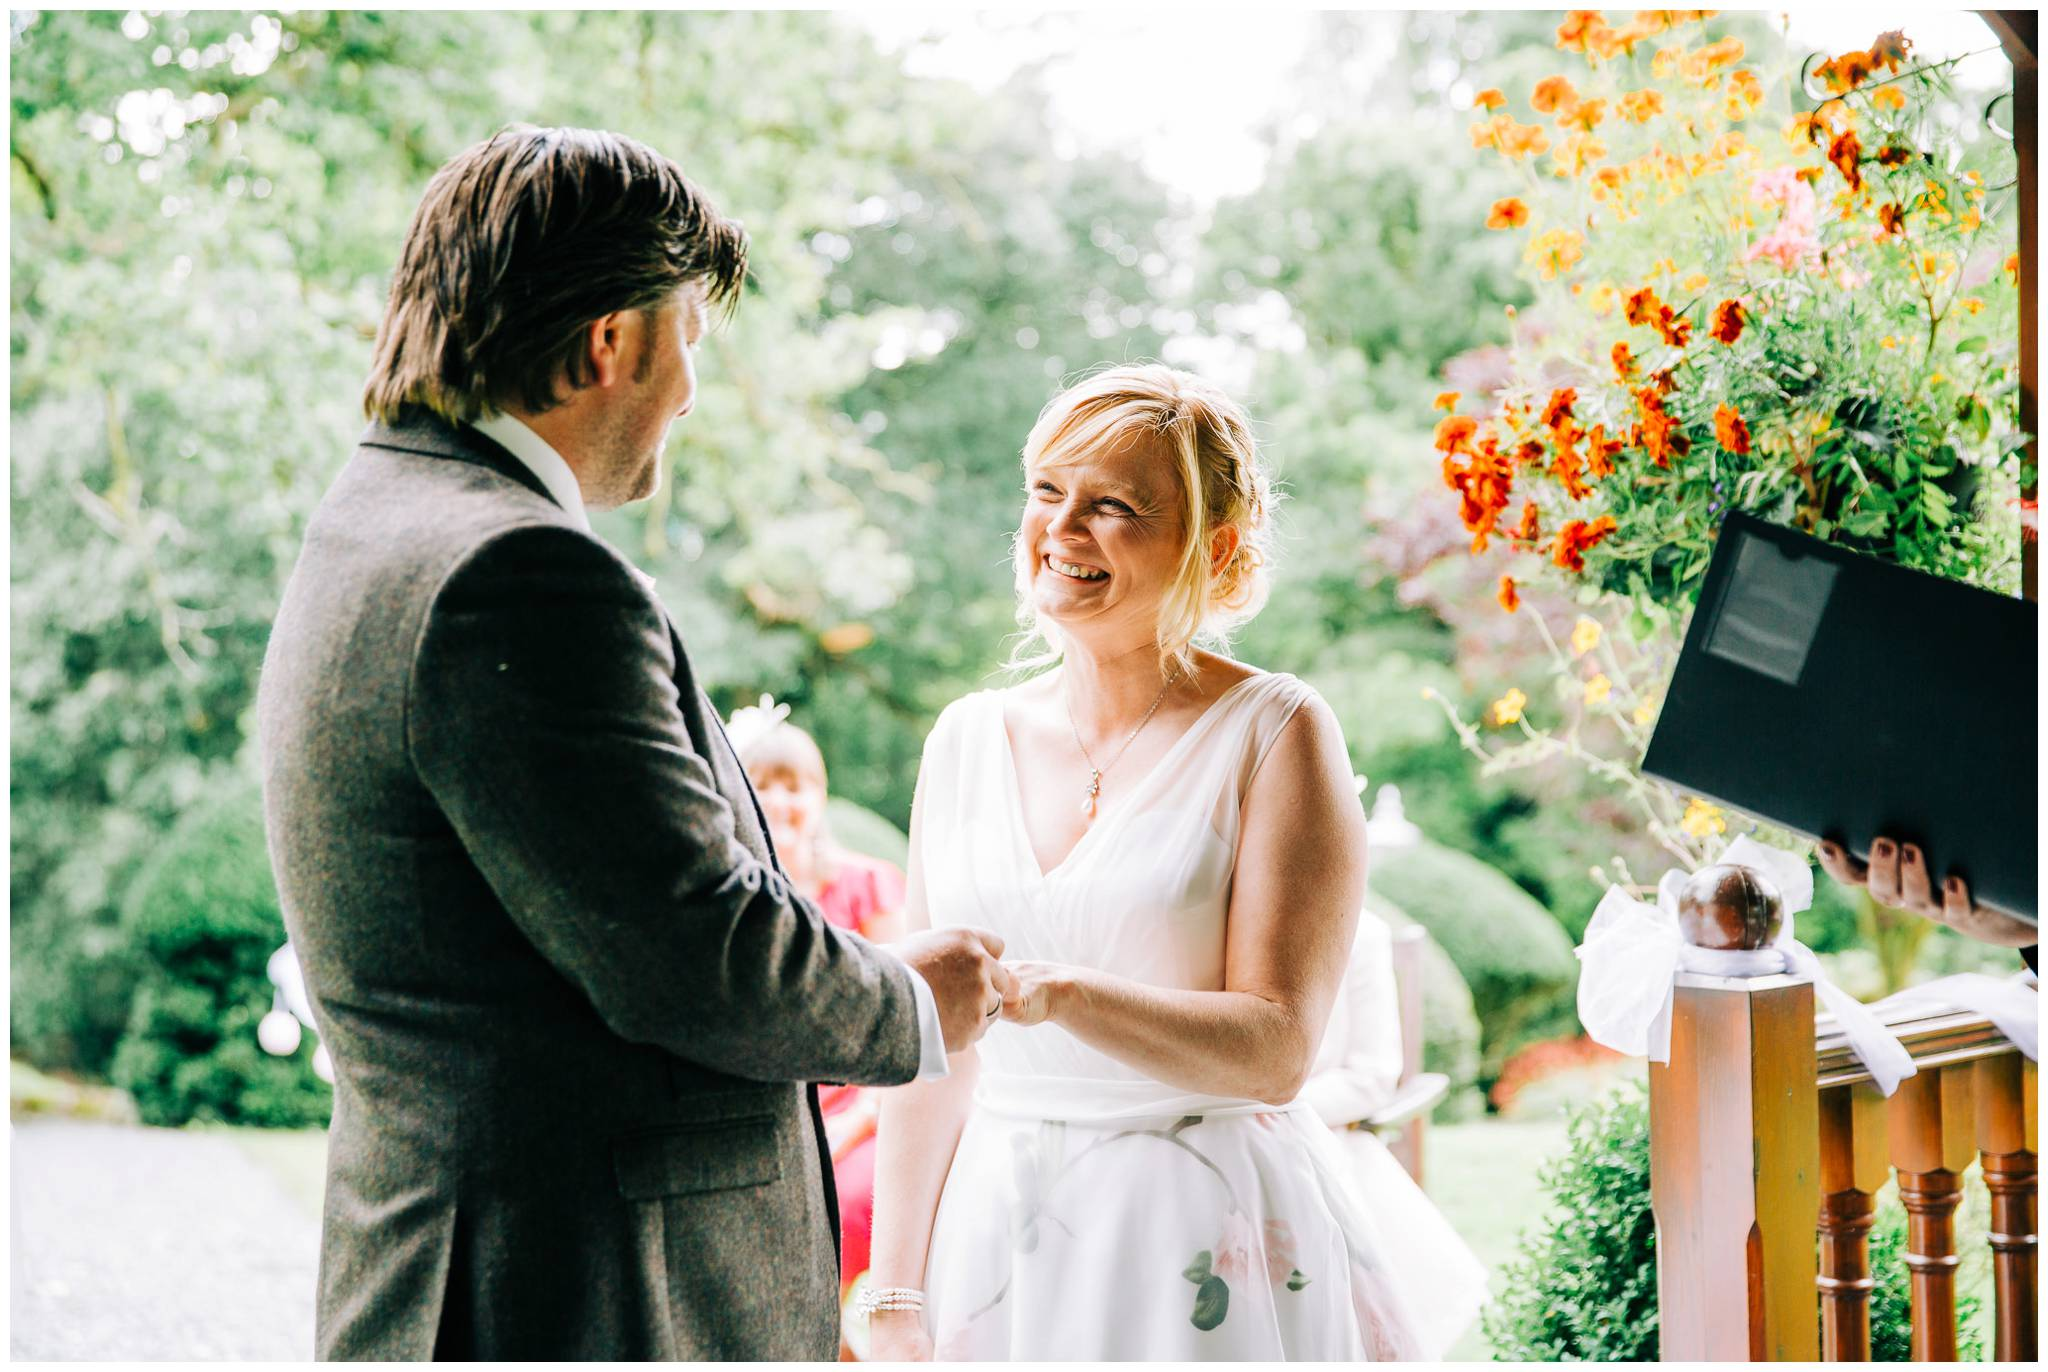 Natural wedding photography Manchester - Clare Robinson Photography_0185.jpg